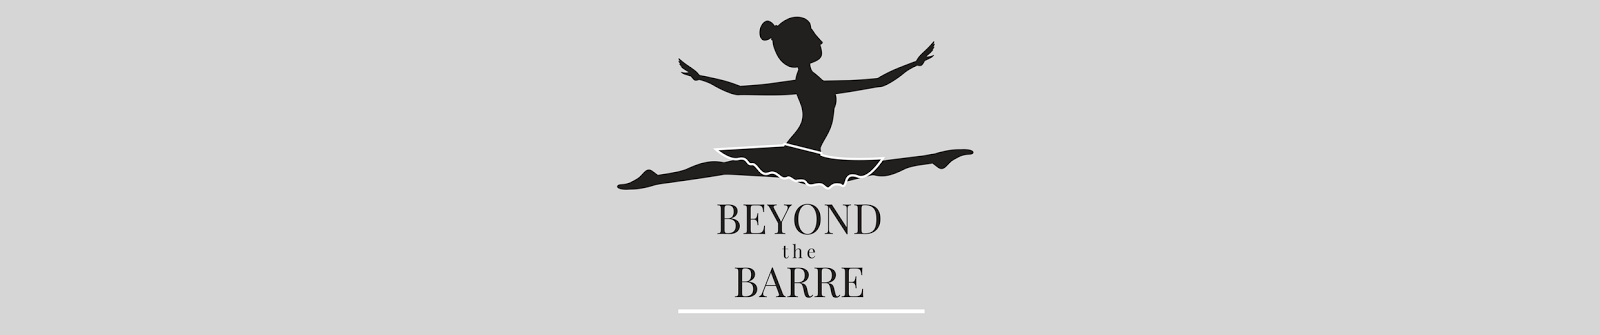 Beyond the Barre